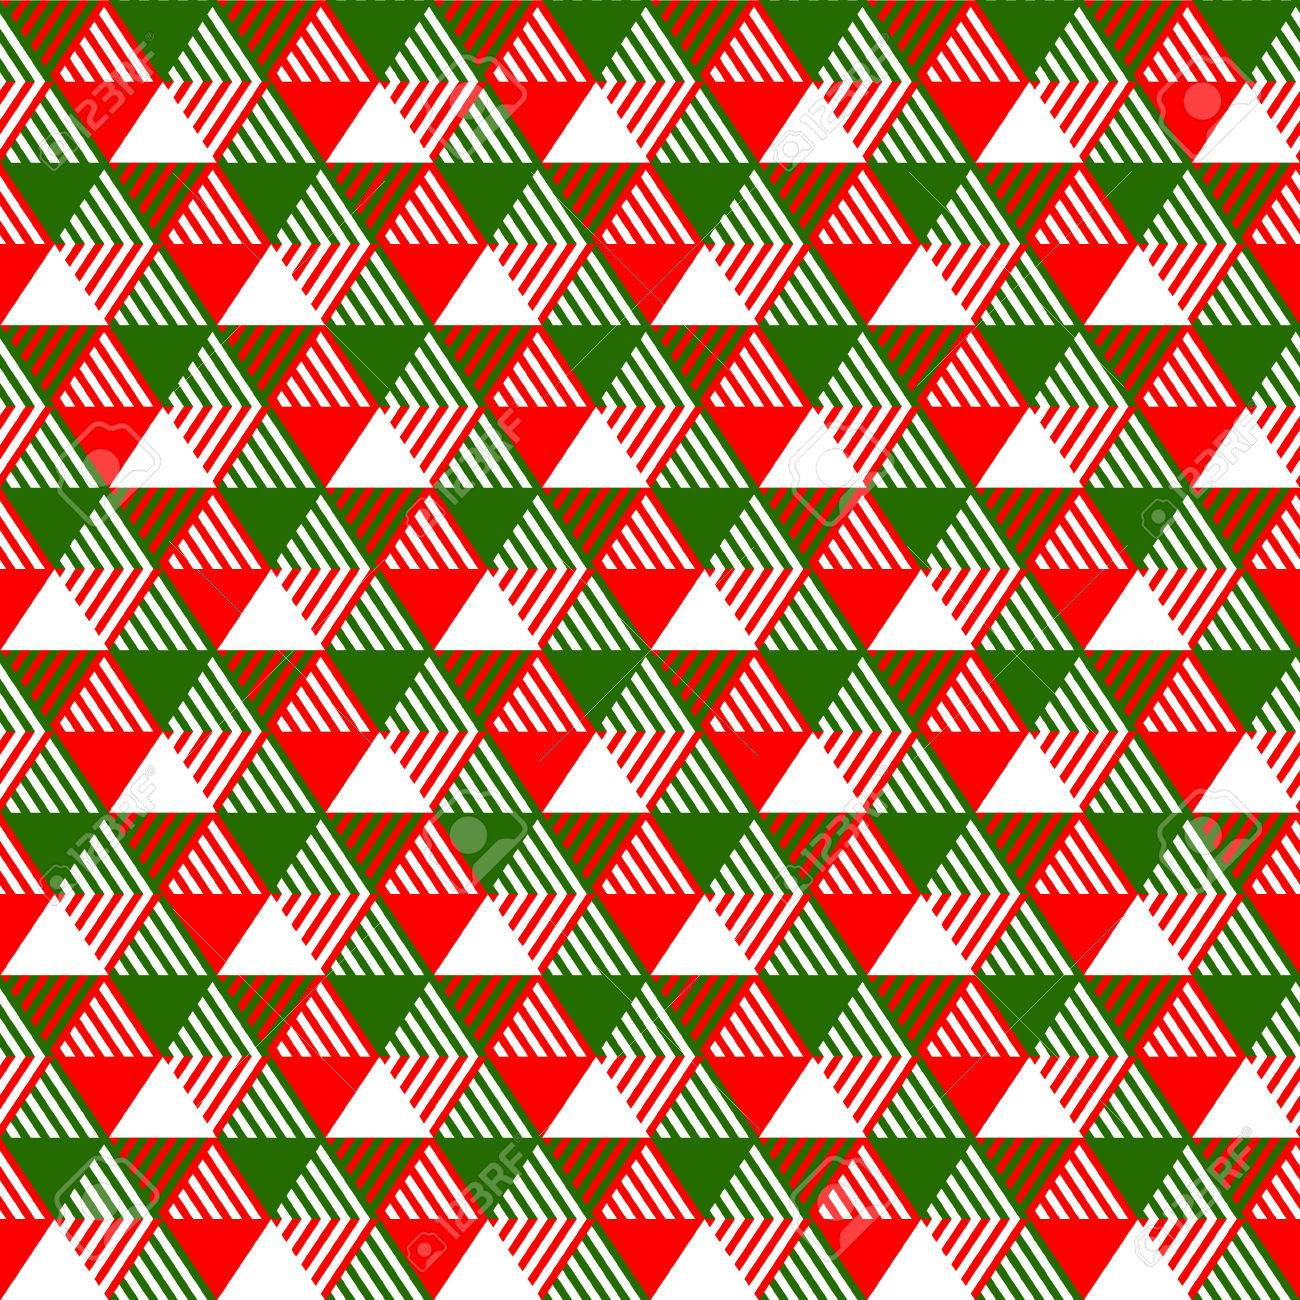 Christmas Colors.Triangles Geometric Seamless Pattern In Christmas Colors Green